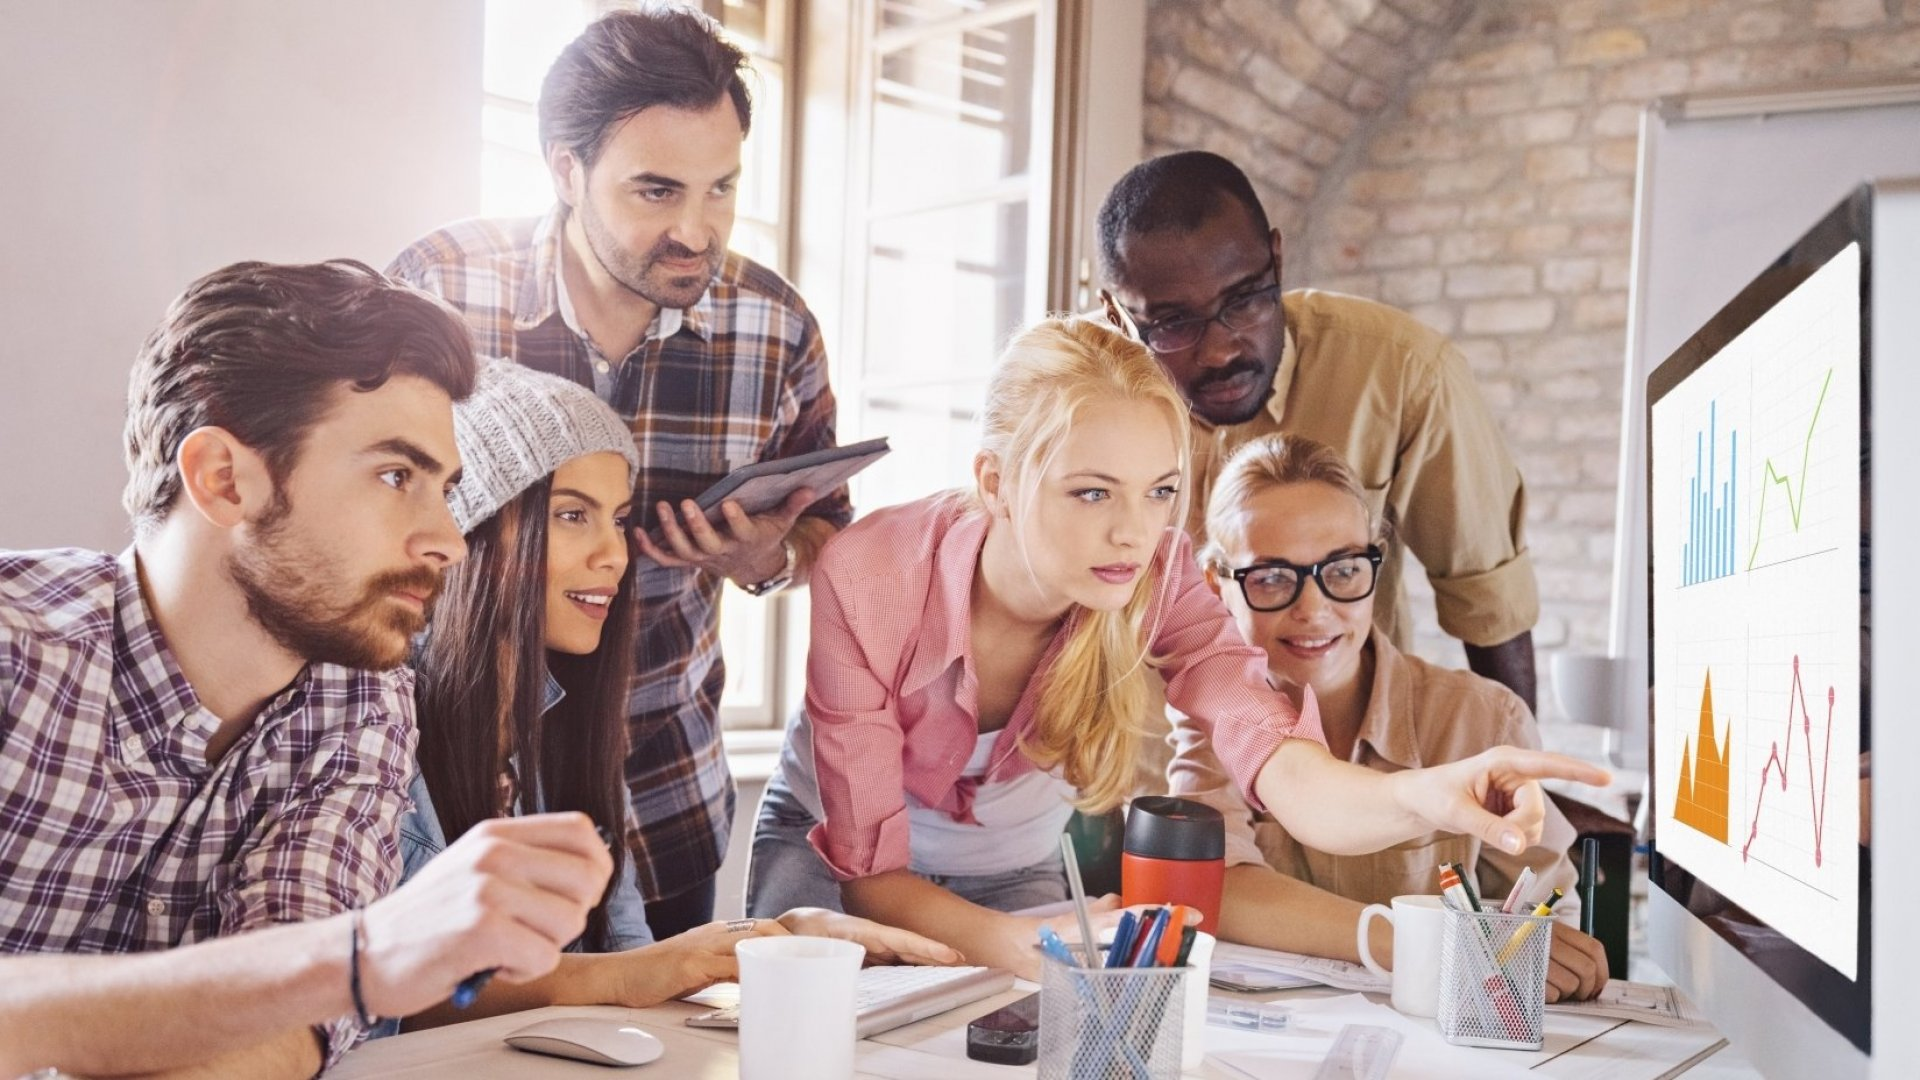 4 Creative Ways to Motivate Your Employees